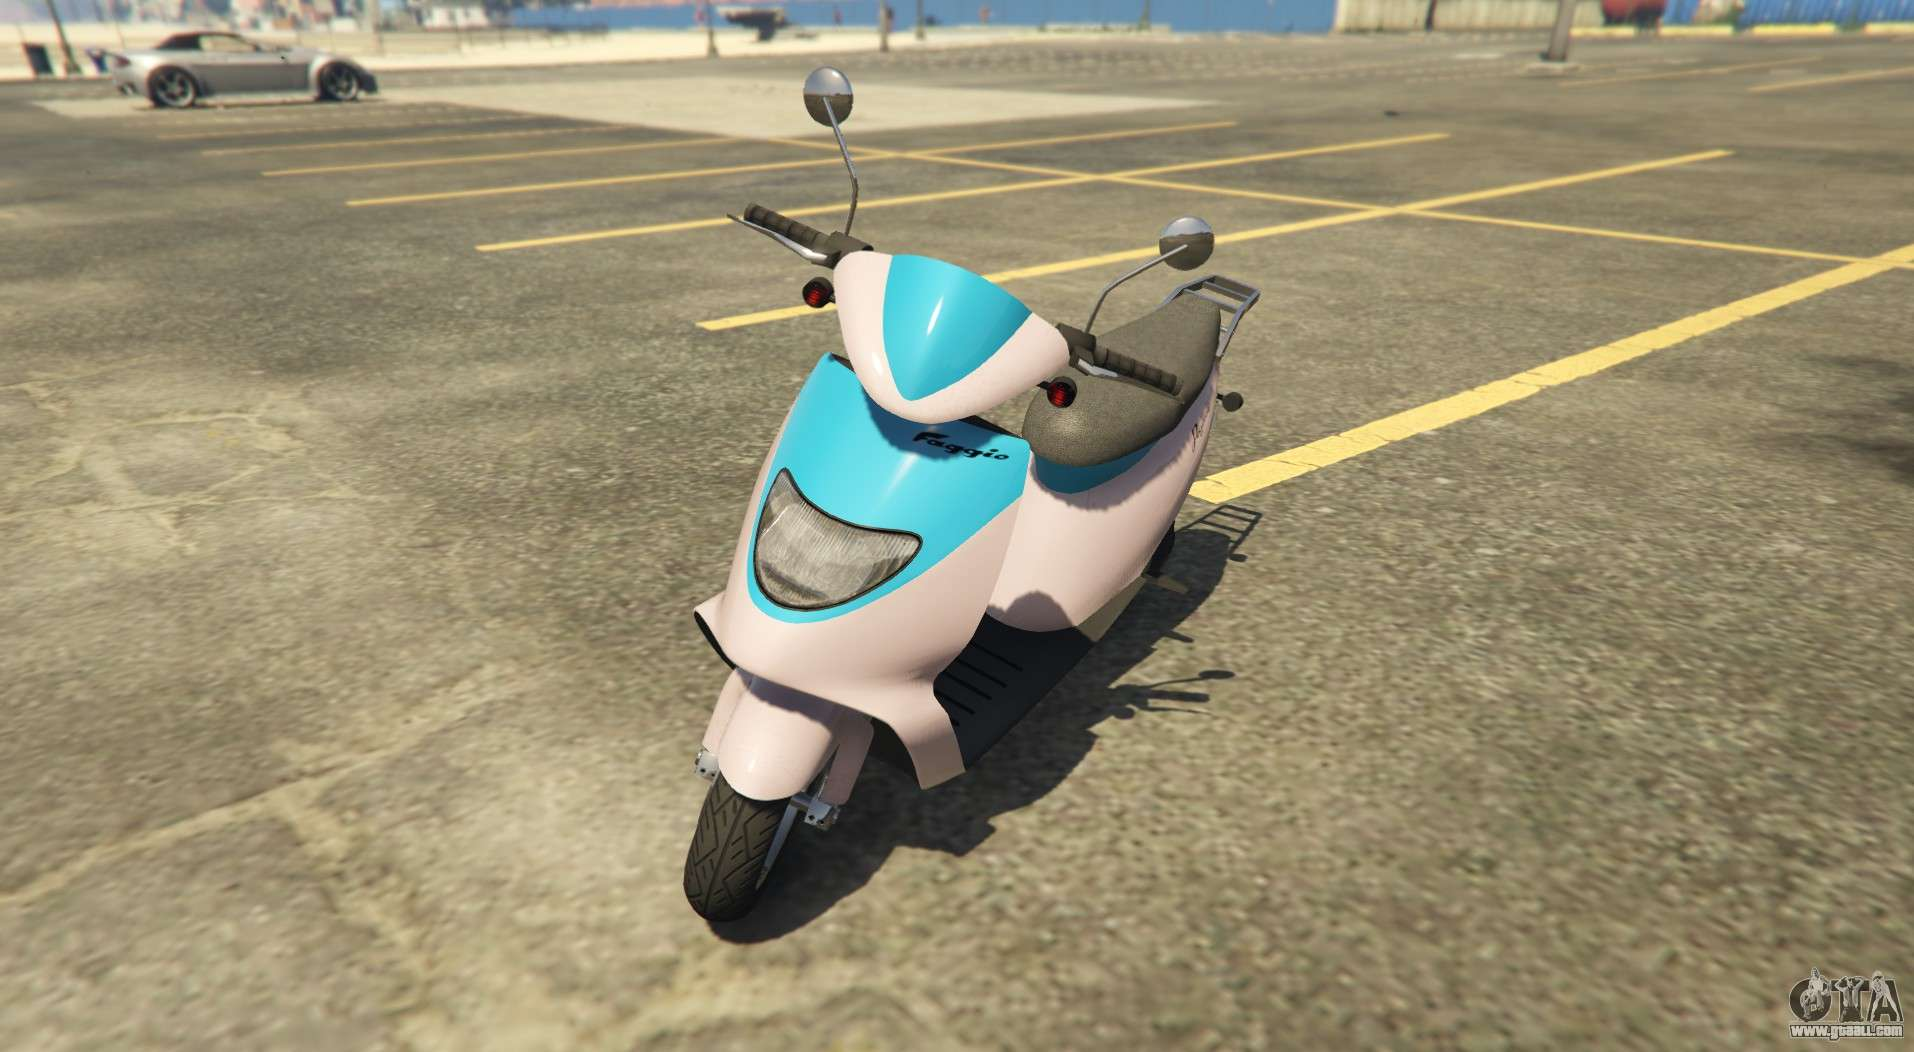 Sports scooter Peggasi Faggio Sport